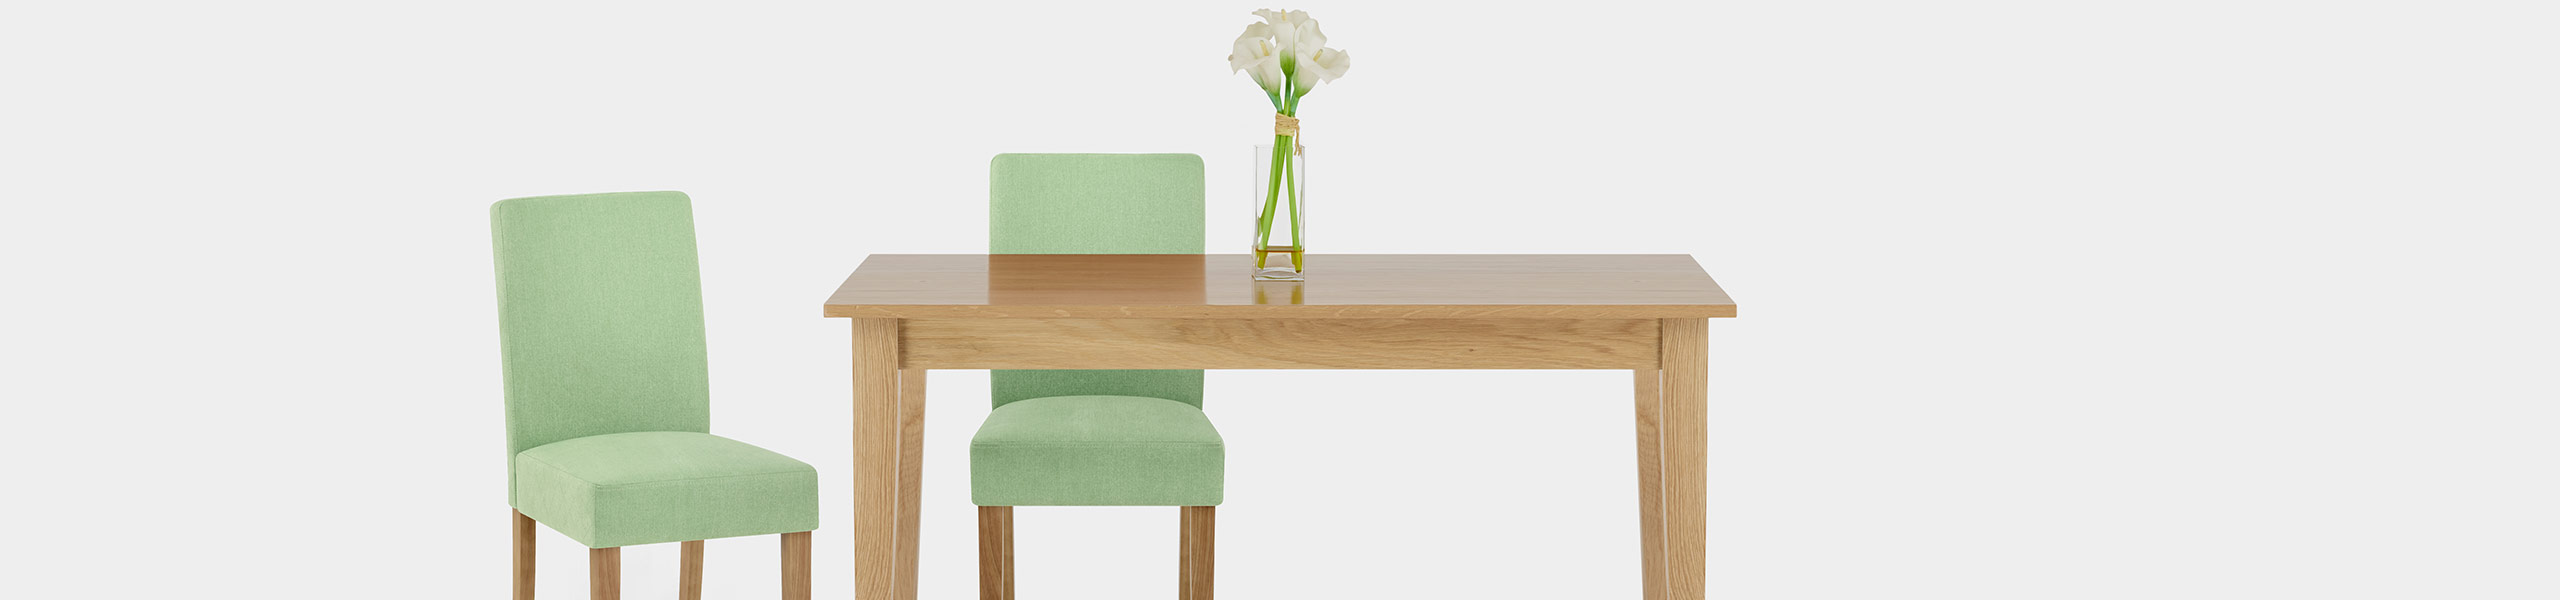 Austin Dining Chair Green Video Banner